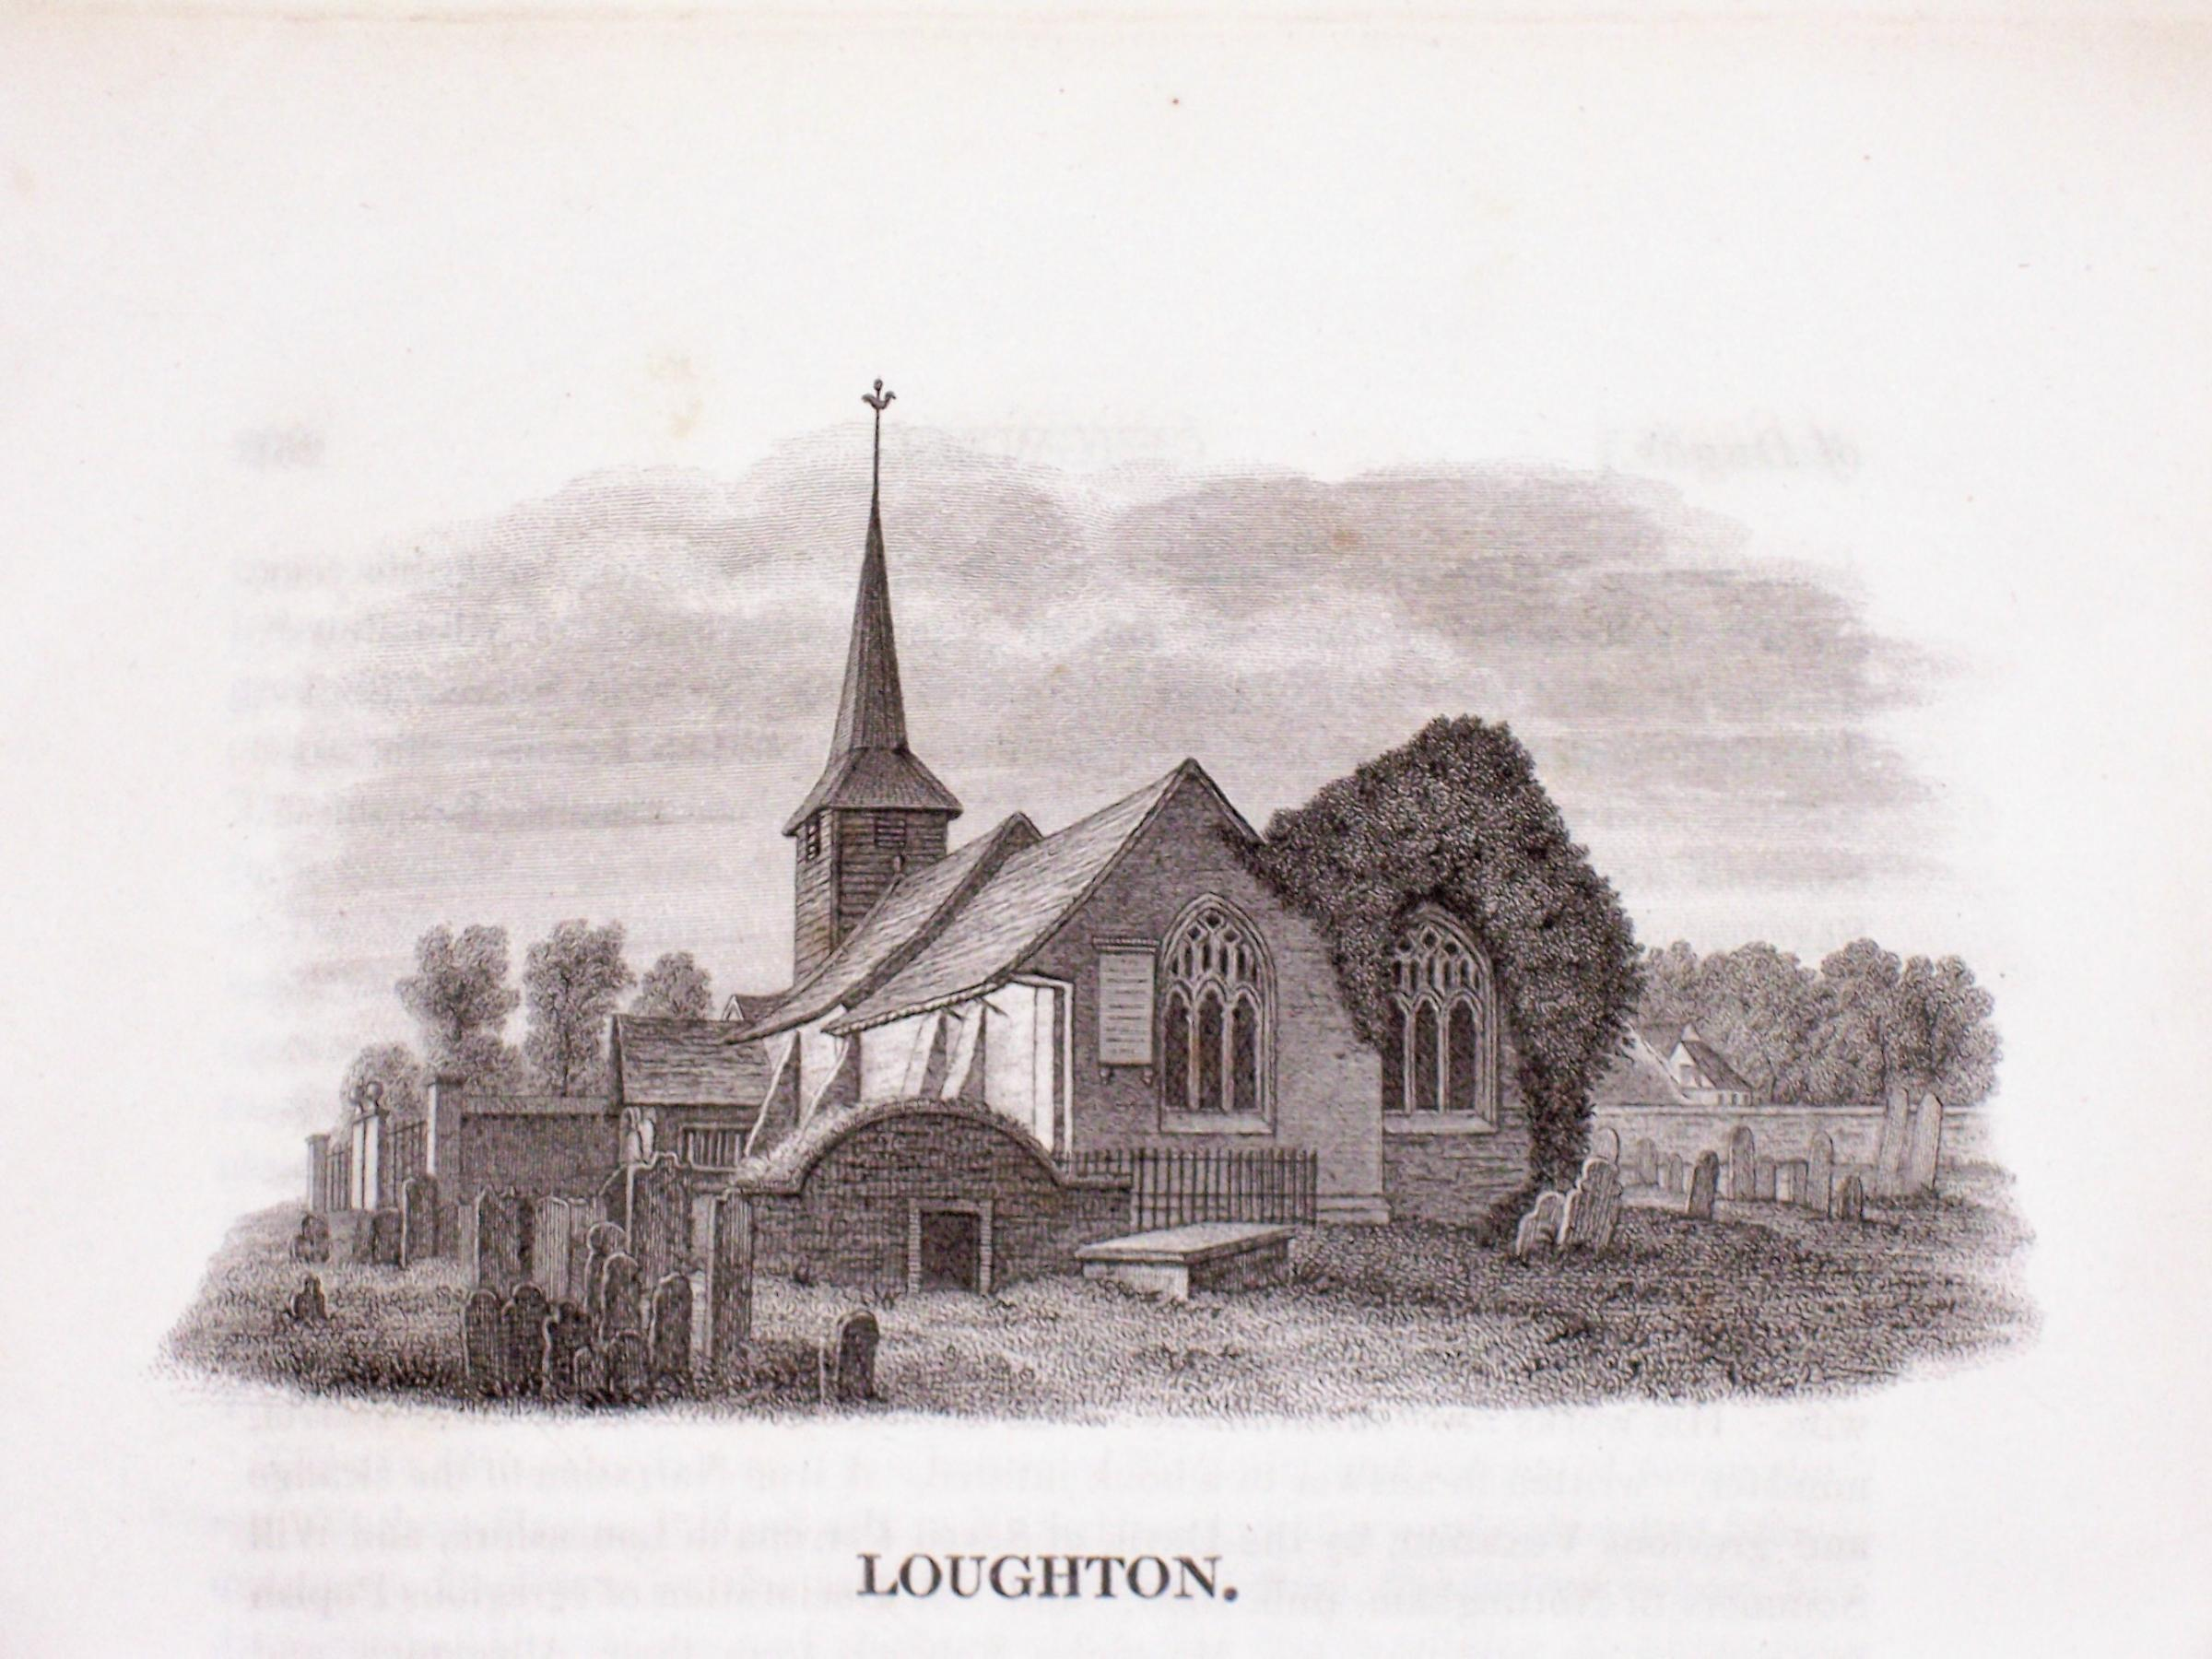 An engraving of St Nicholas' Church, Loughton's original parish church